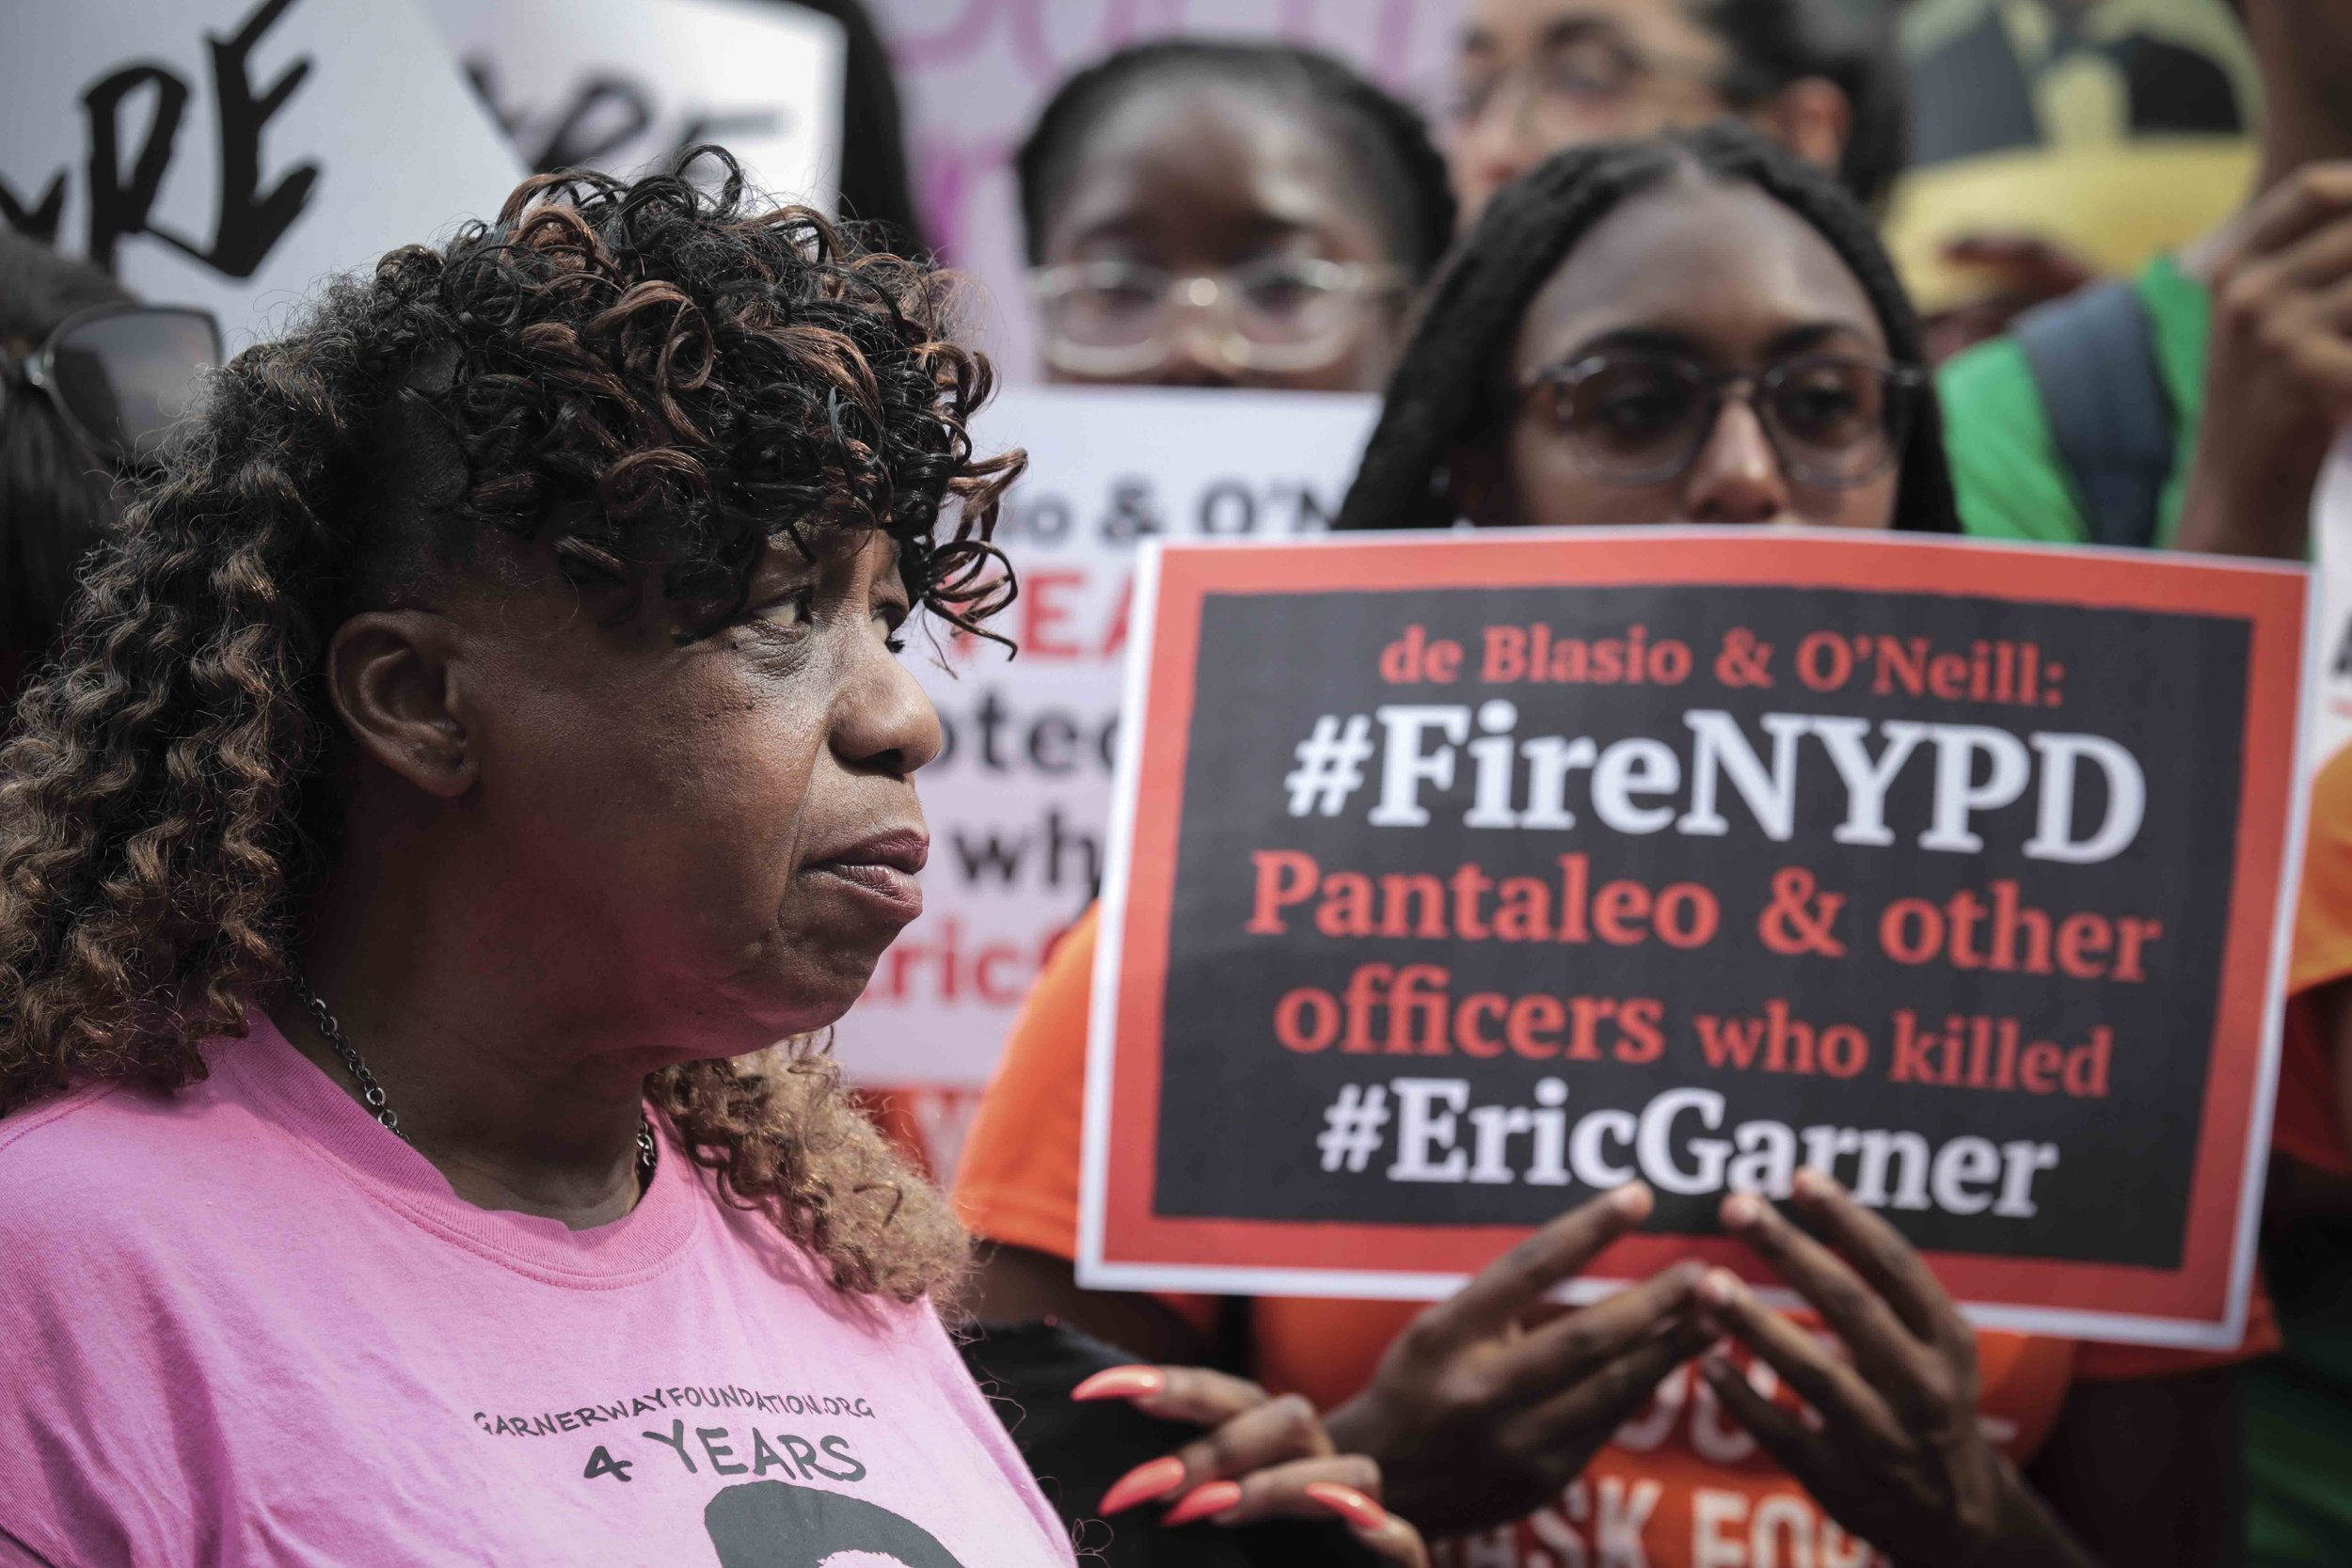 Eric Garner's mother has been a fierce advocate for police accountability since her son's death in 2014. On Friday, an NYPD judge recommended firing the officer who choked Garner, leading to his death. AP Photo/Bebeto Matthews.